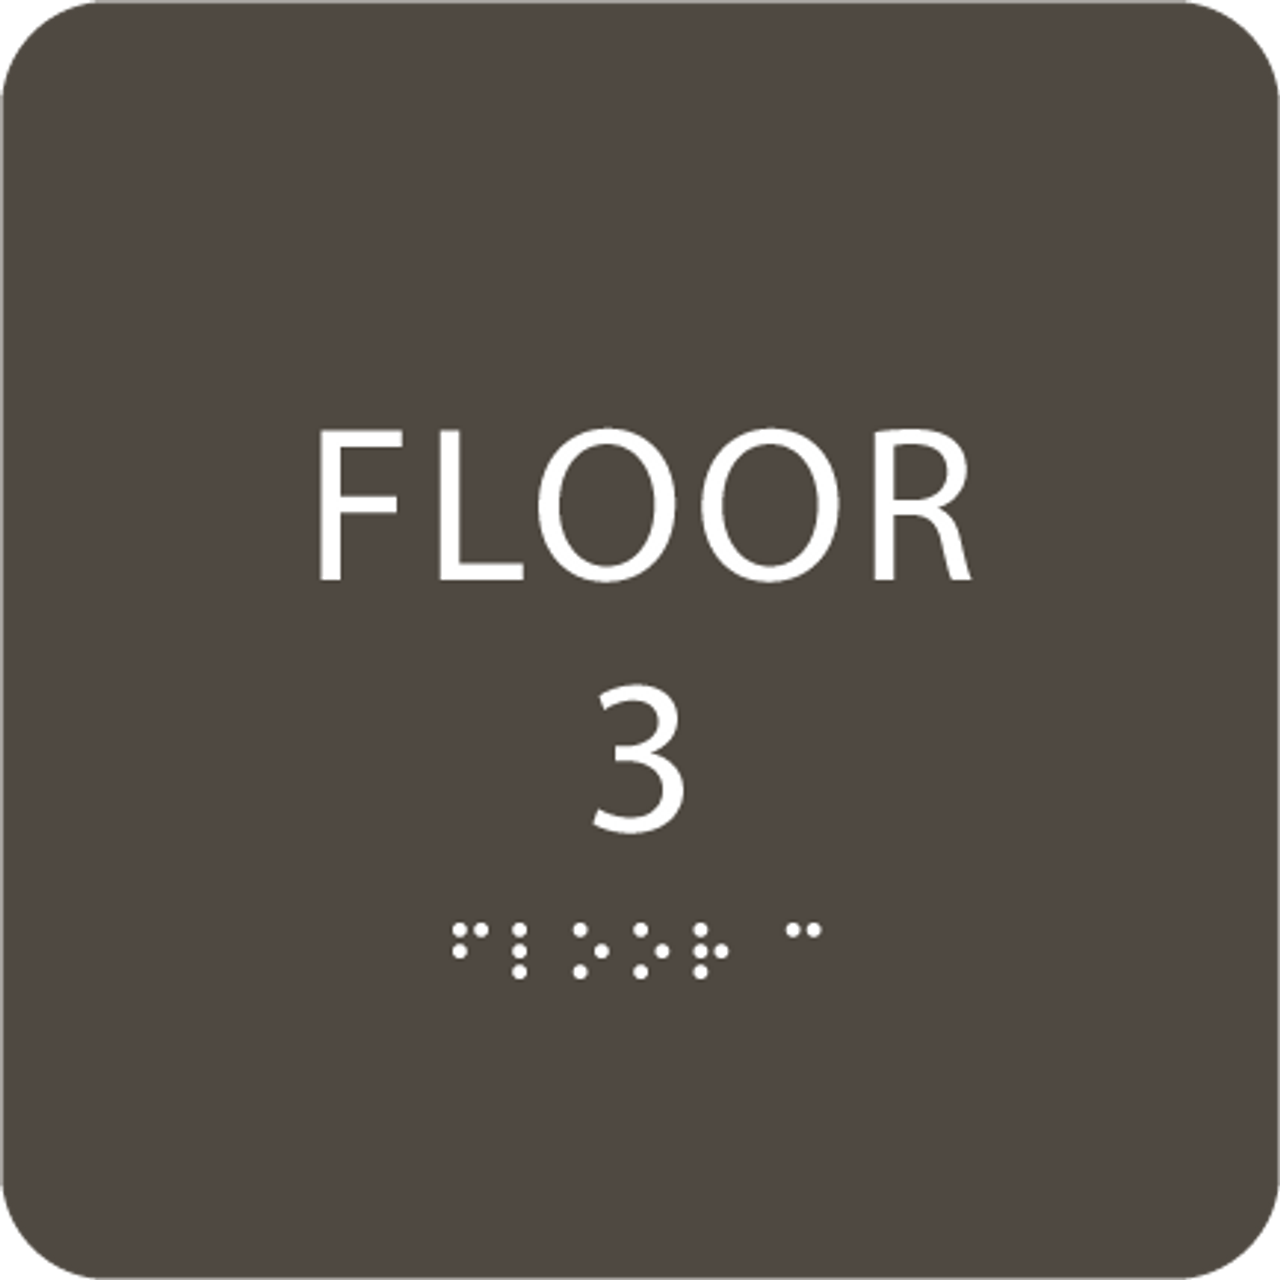 Olive Floor 3 Identification Sign